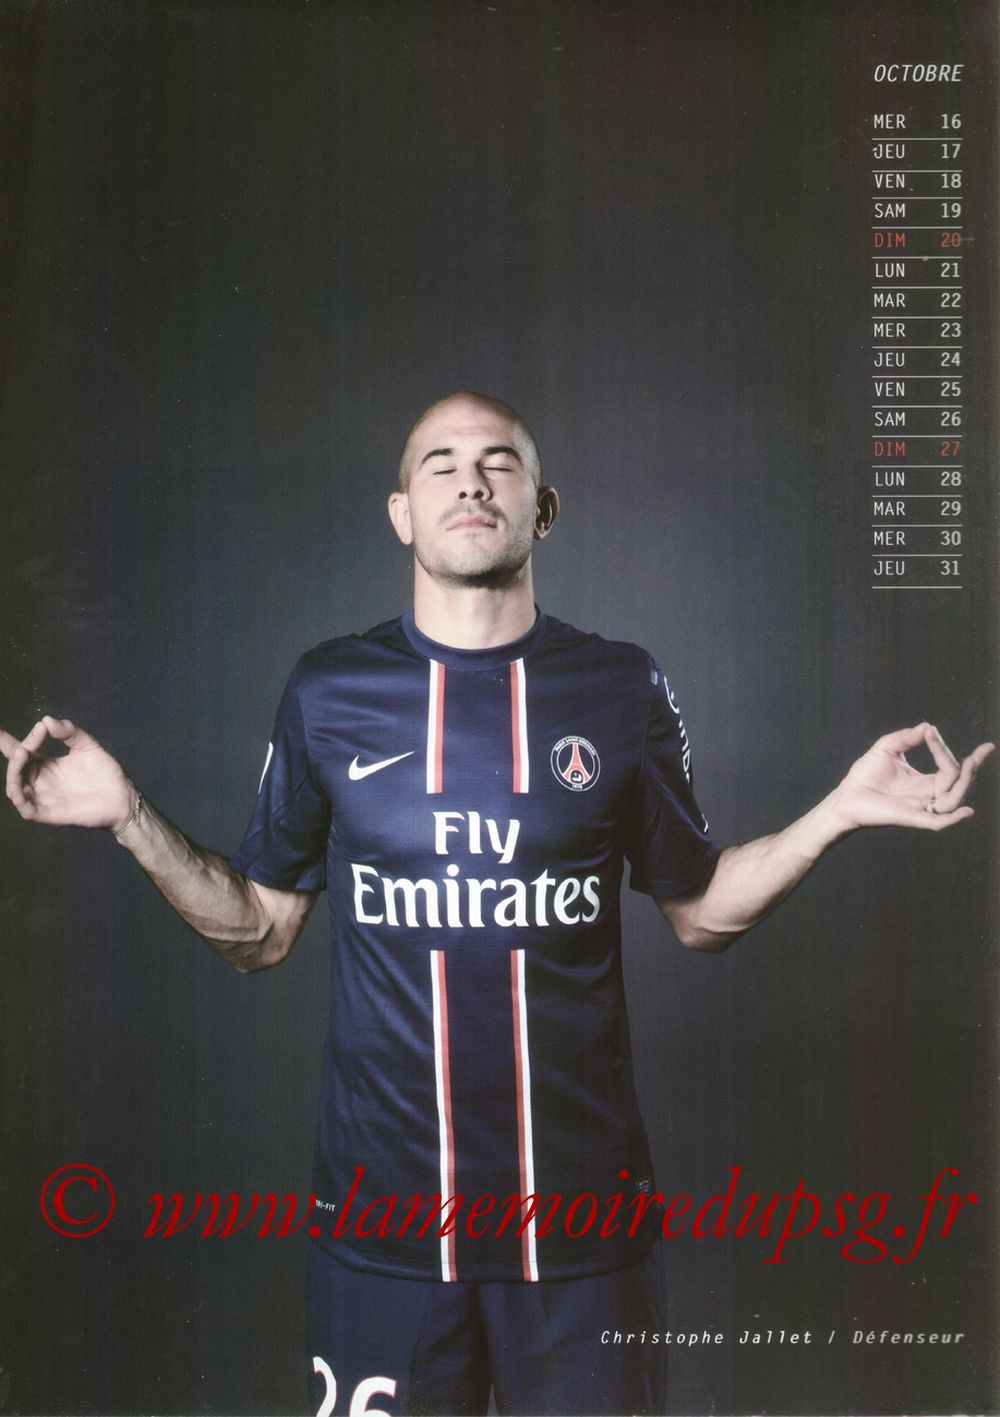 Calendrier PSG 2013 - Page 20 - Christophe JALLET